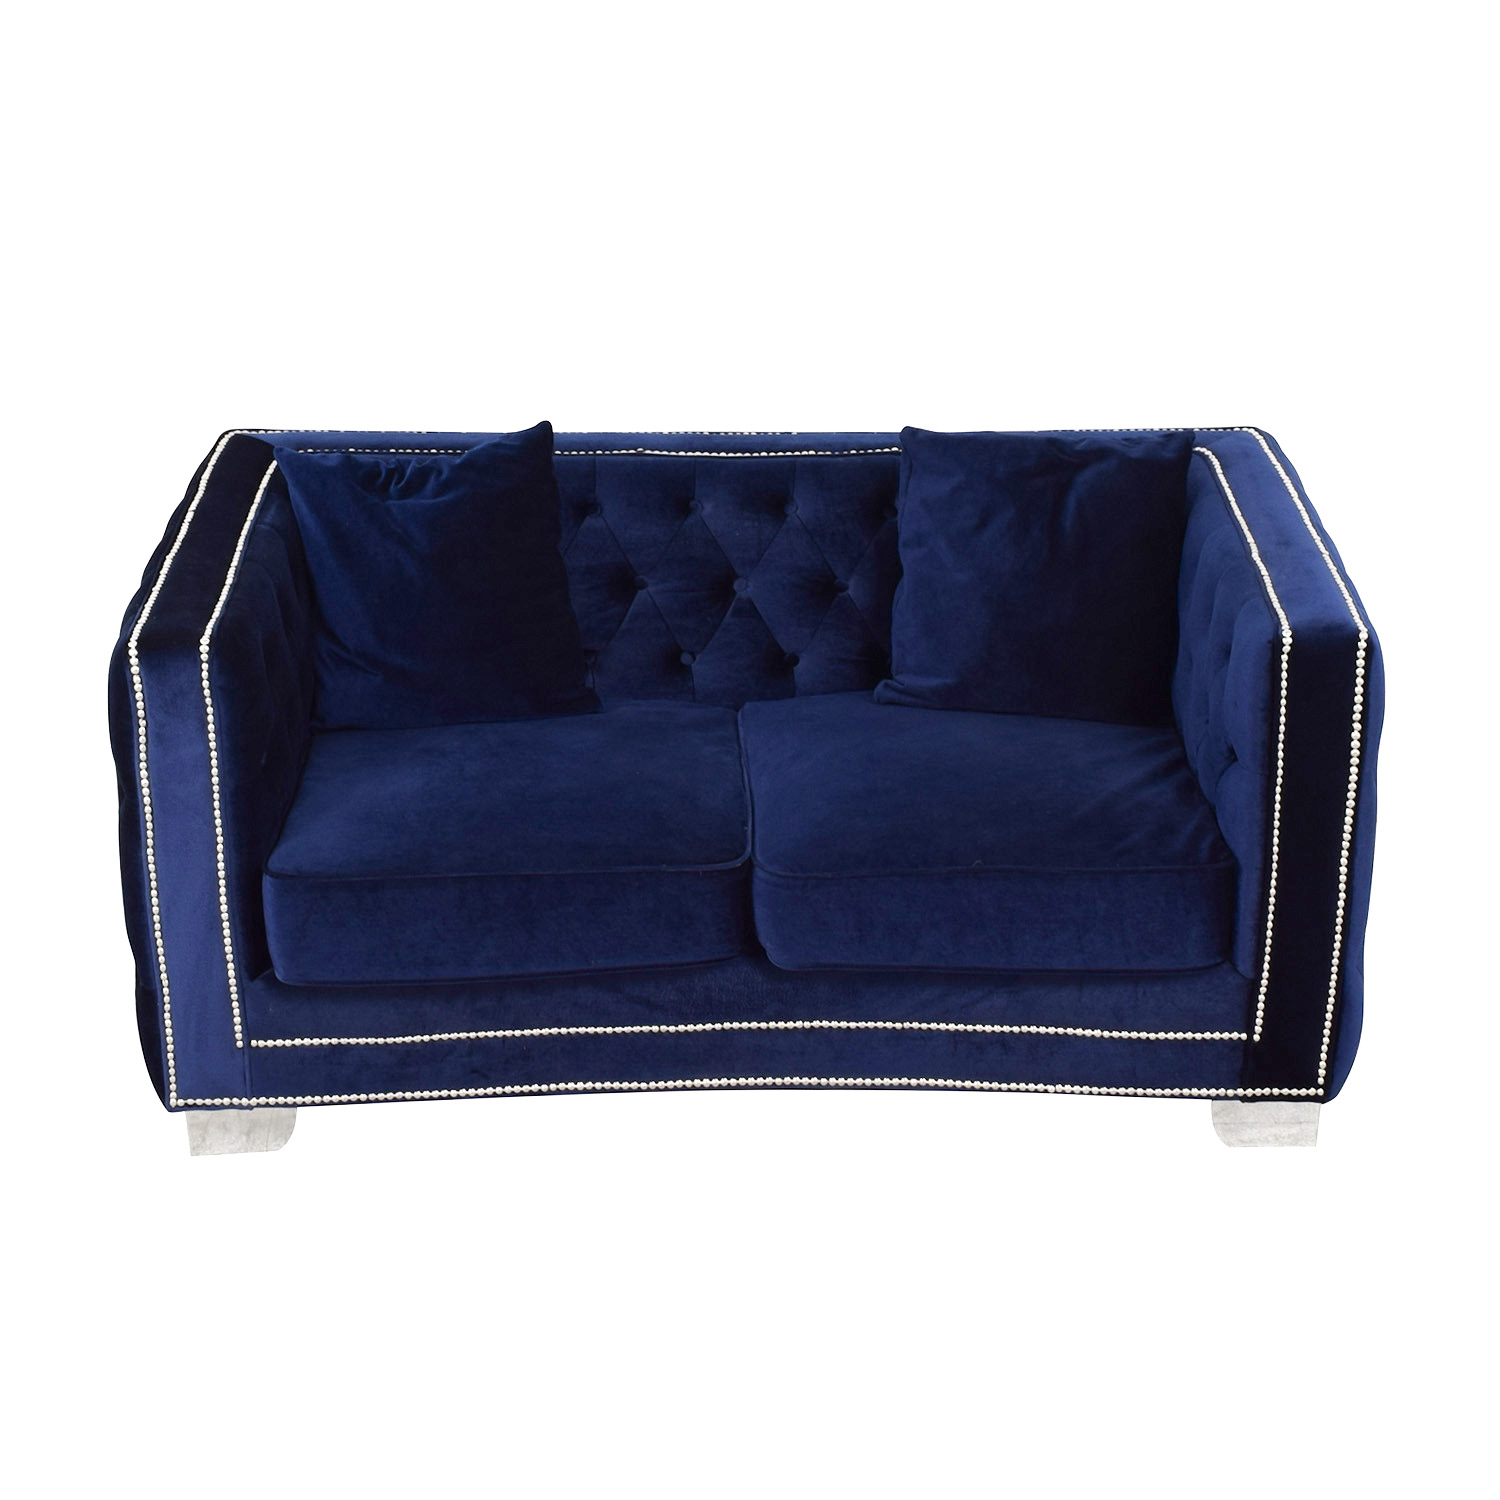 87% OFF - Ashley Furniture Ashley Furniture Blue Tufted Nailhead Two ...